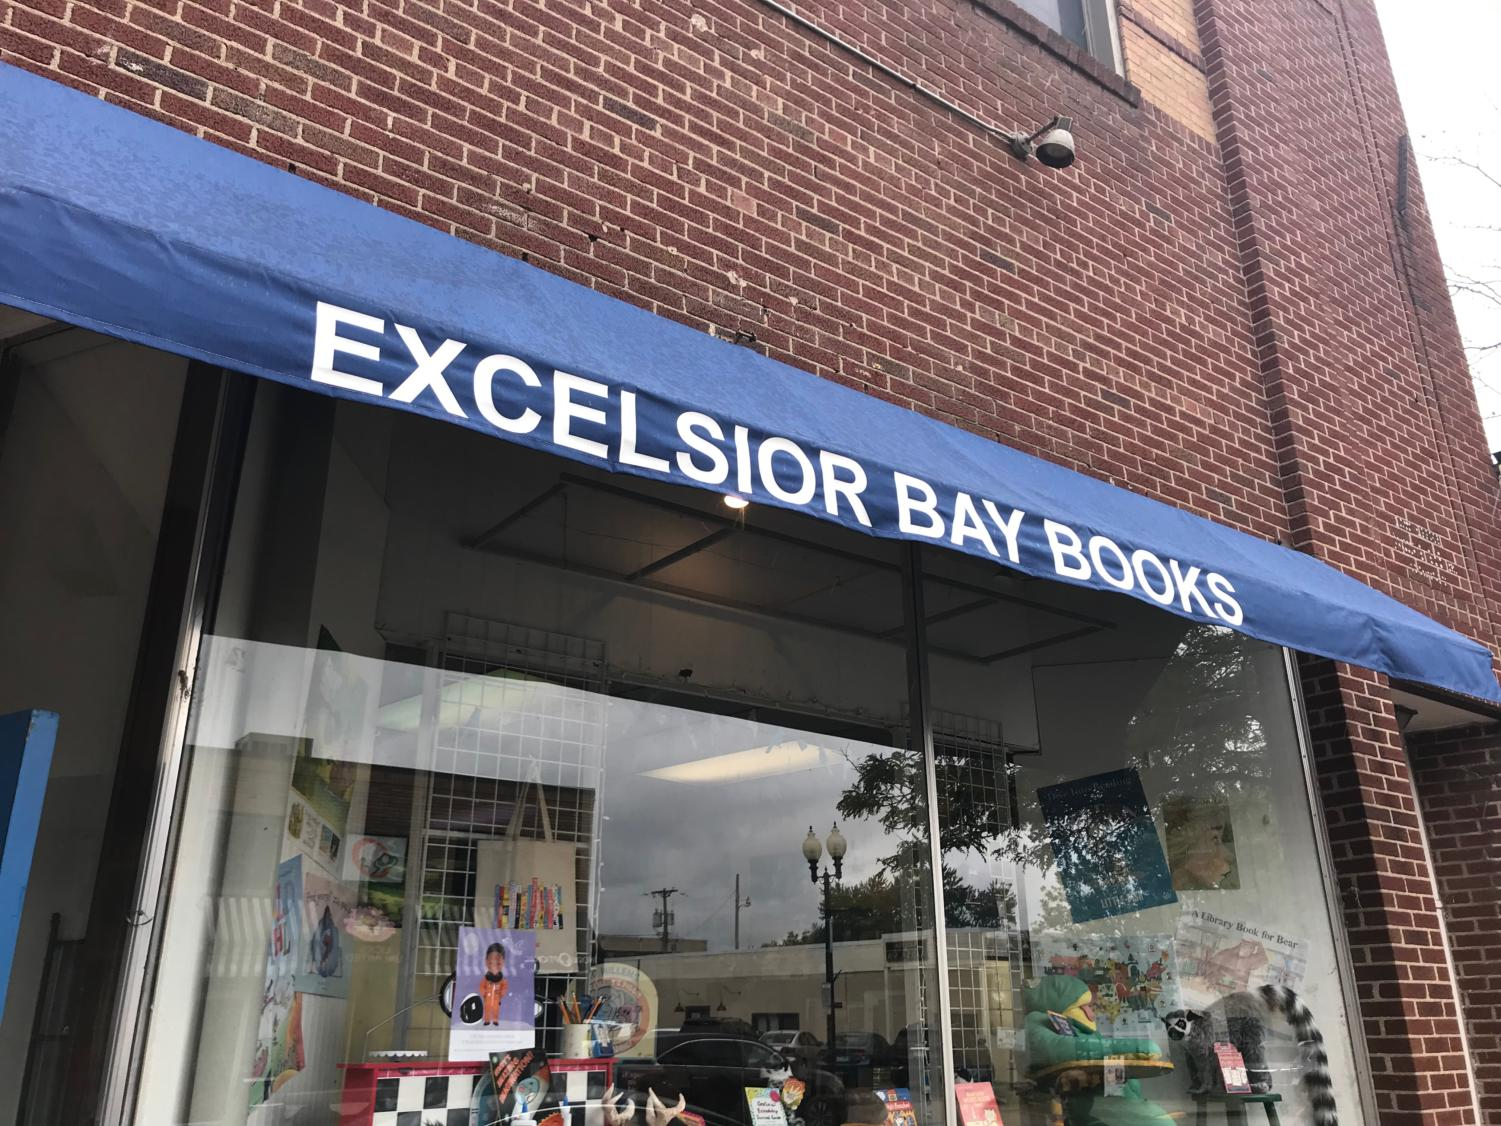 Excelsior Books shows off stuffed animals, toys, merchandise, and of course, books our front.